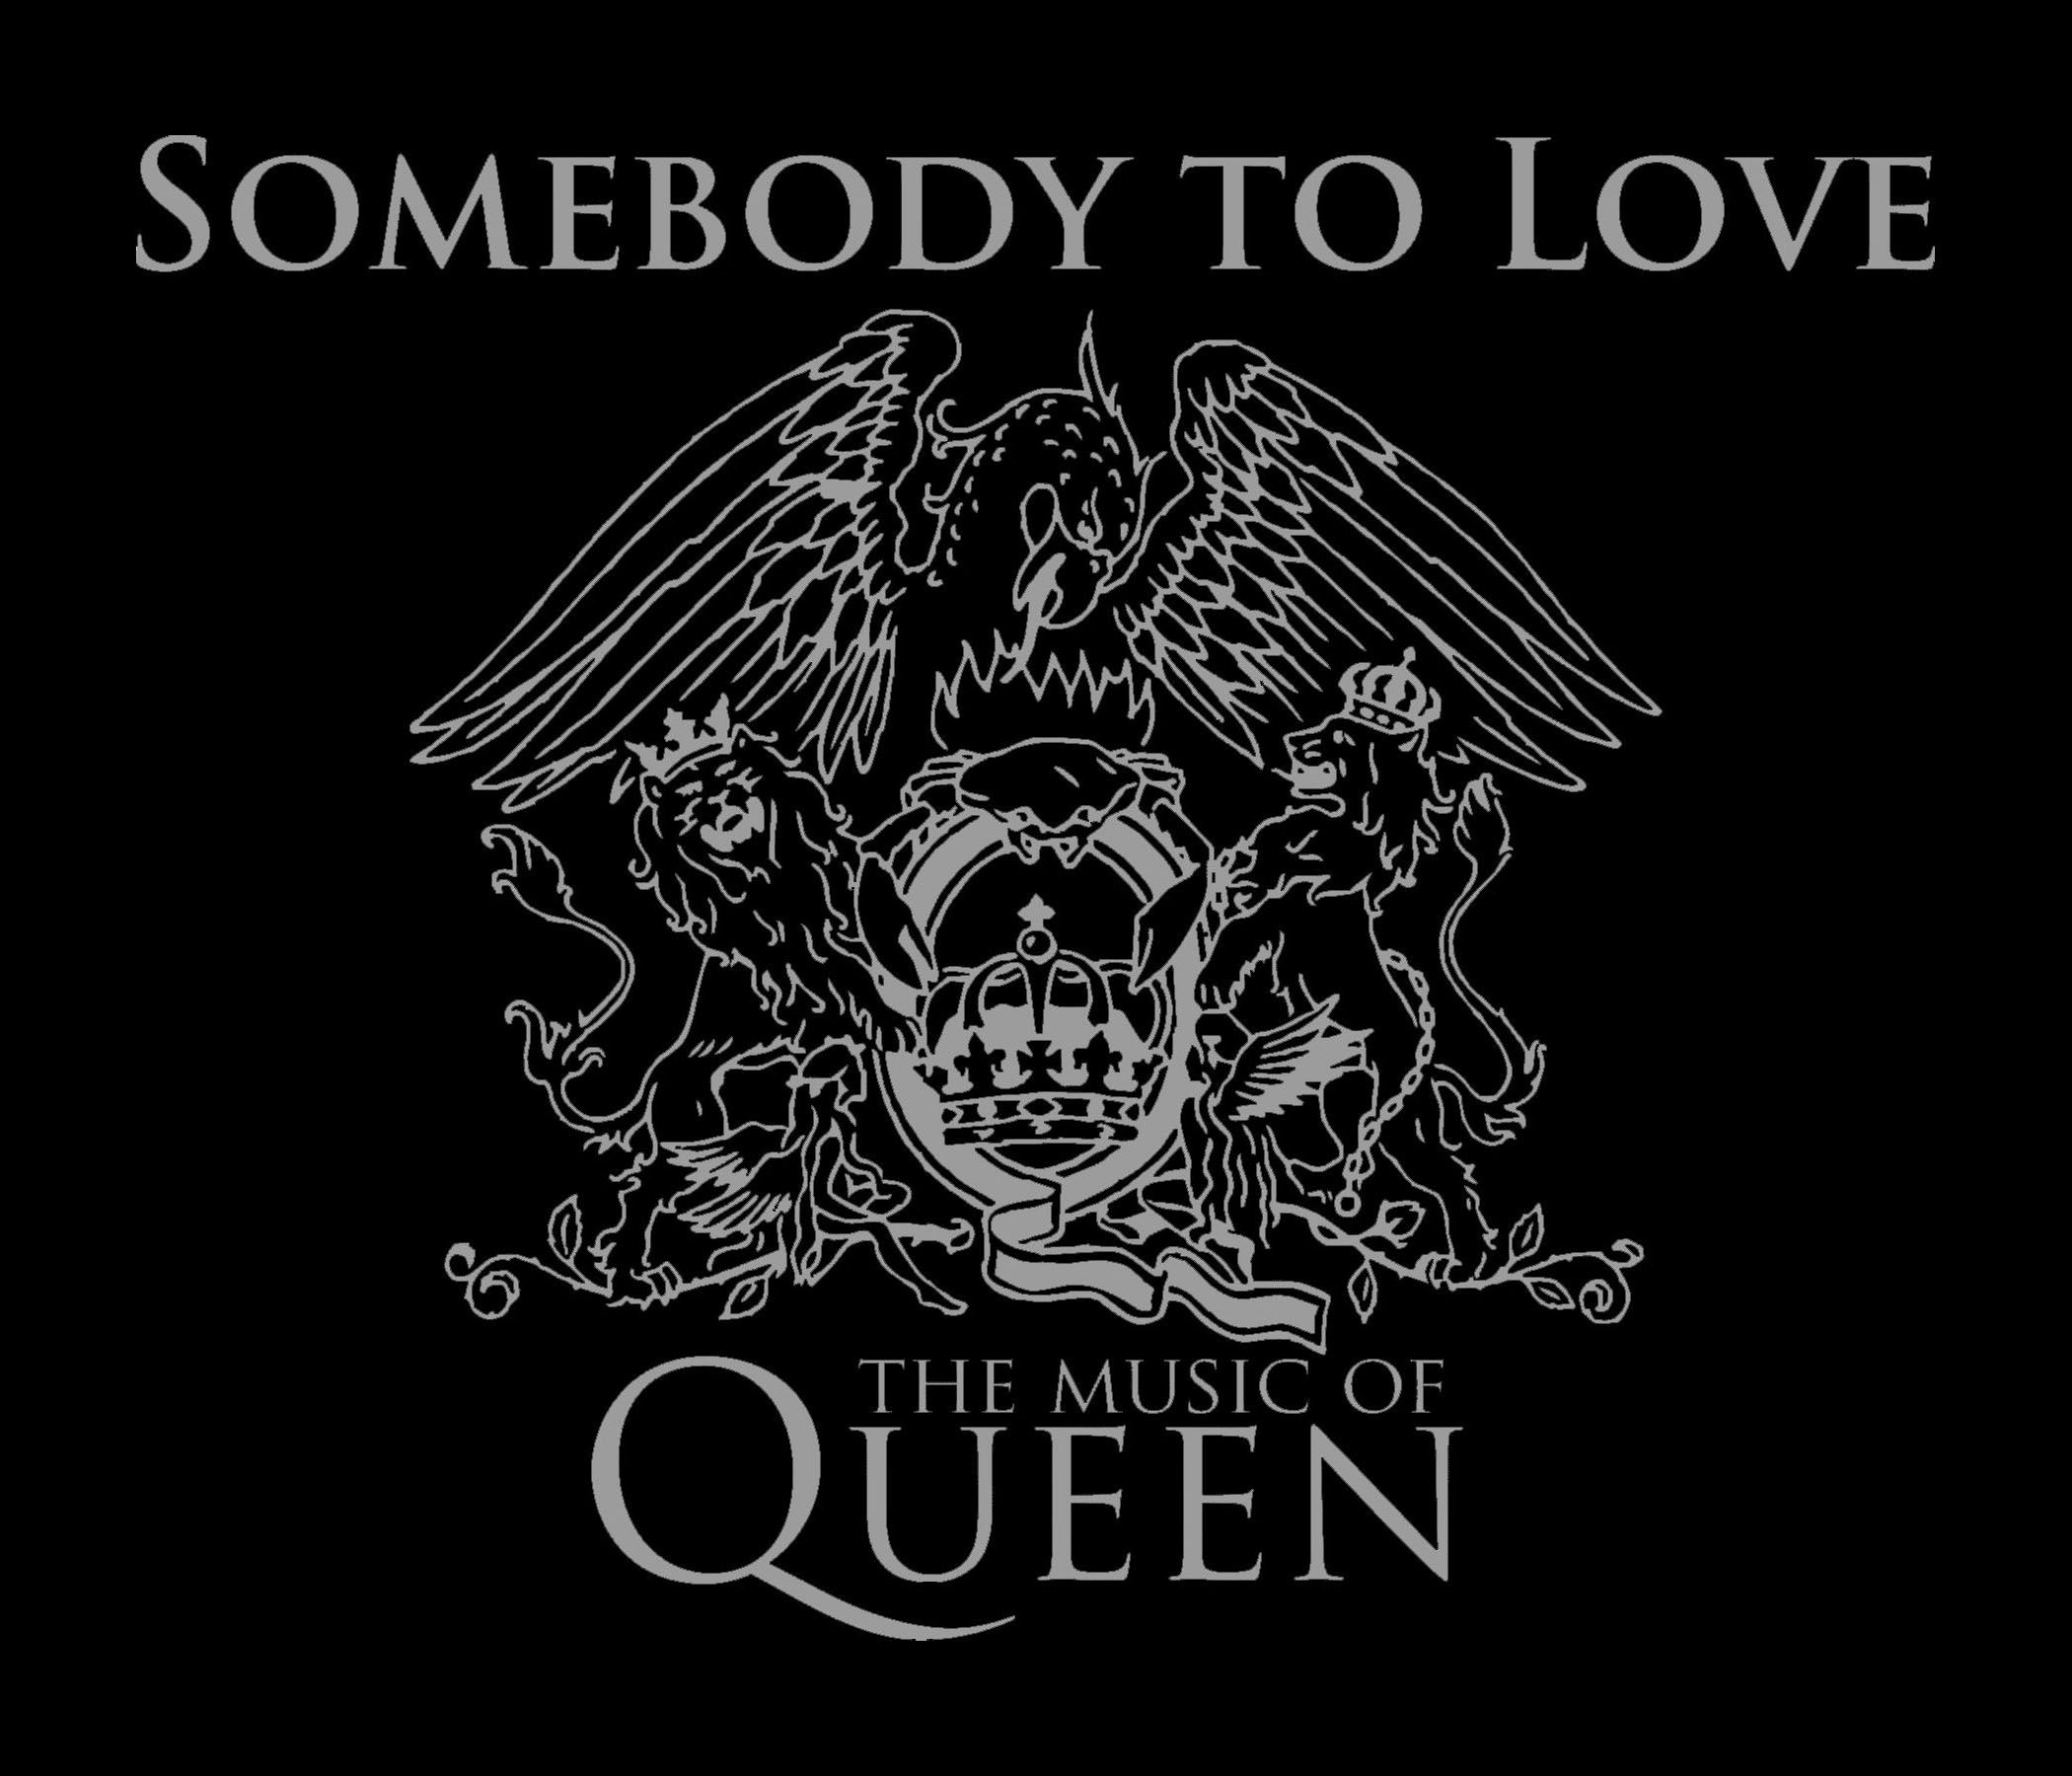 Queen Band Logo Google Search With Images Somebody To Love